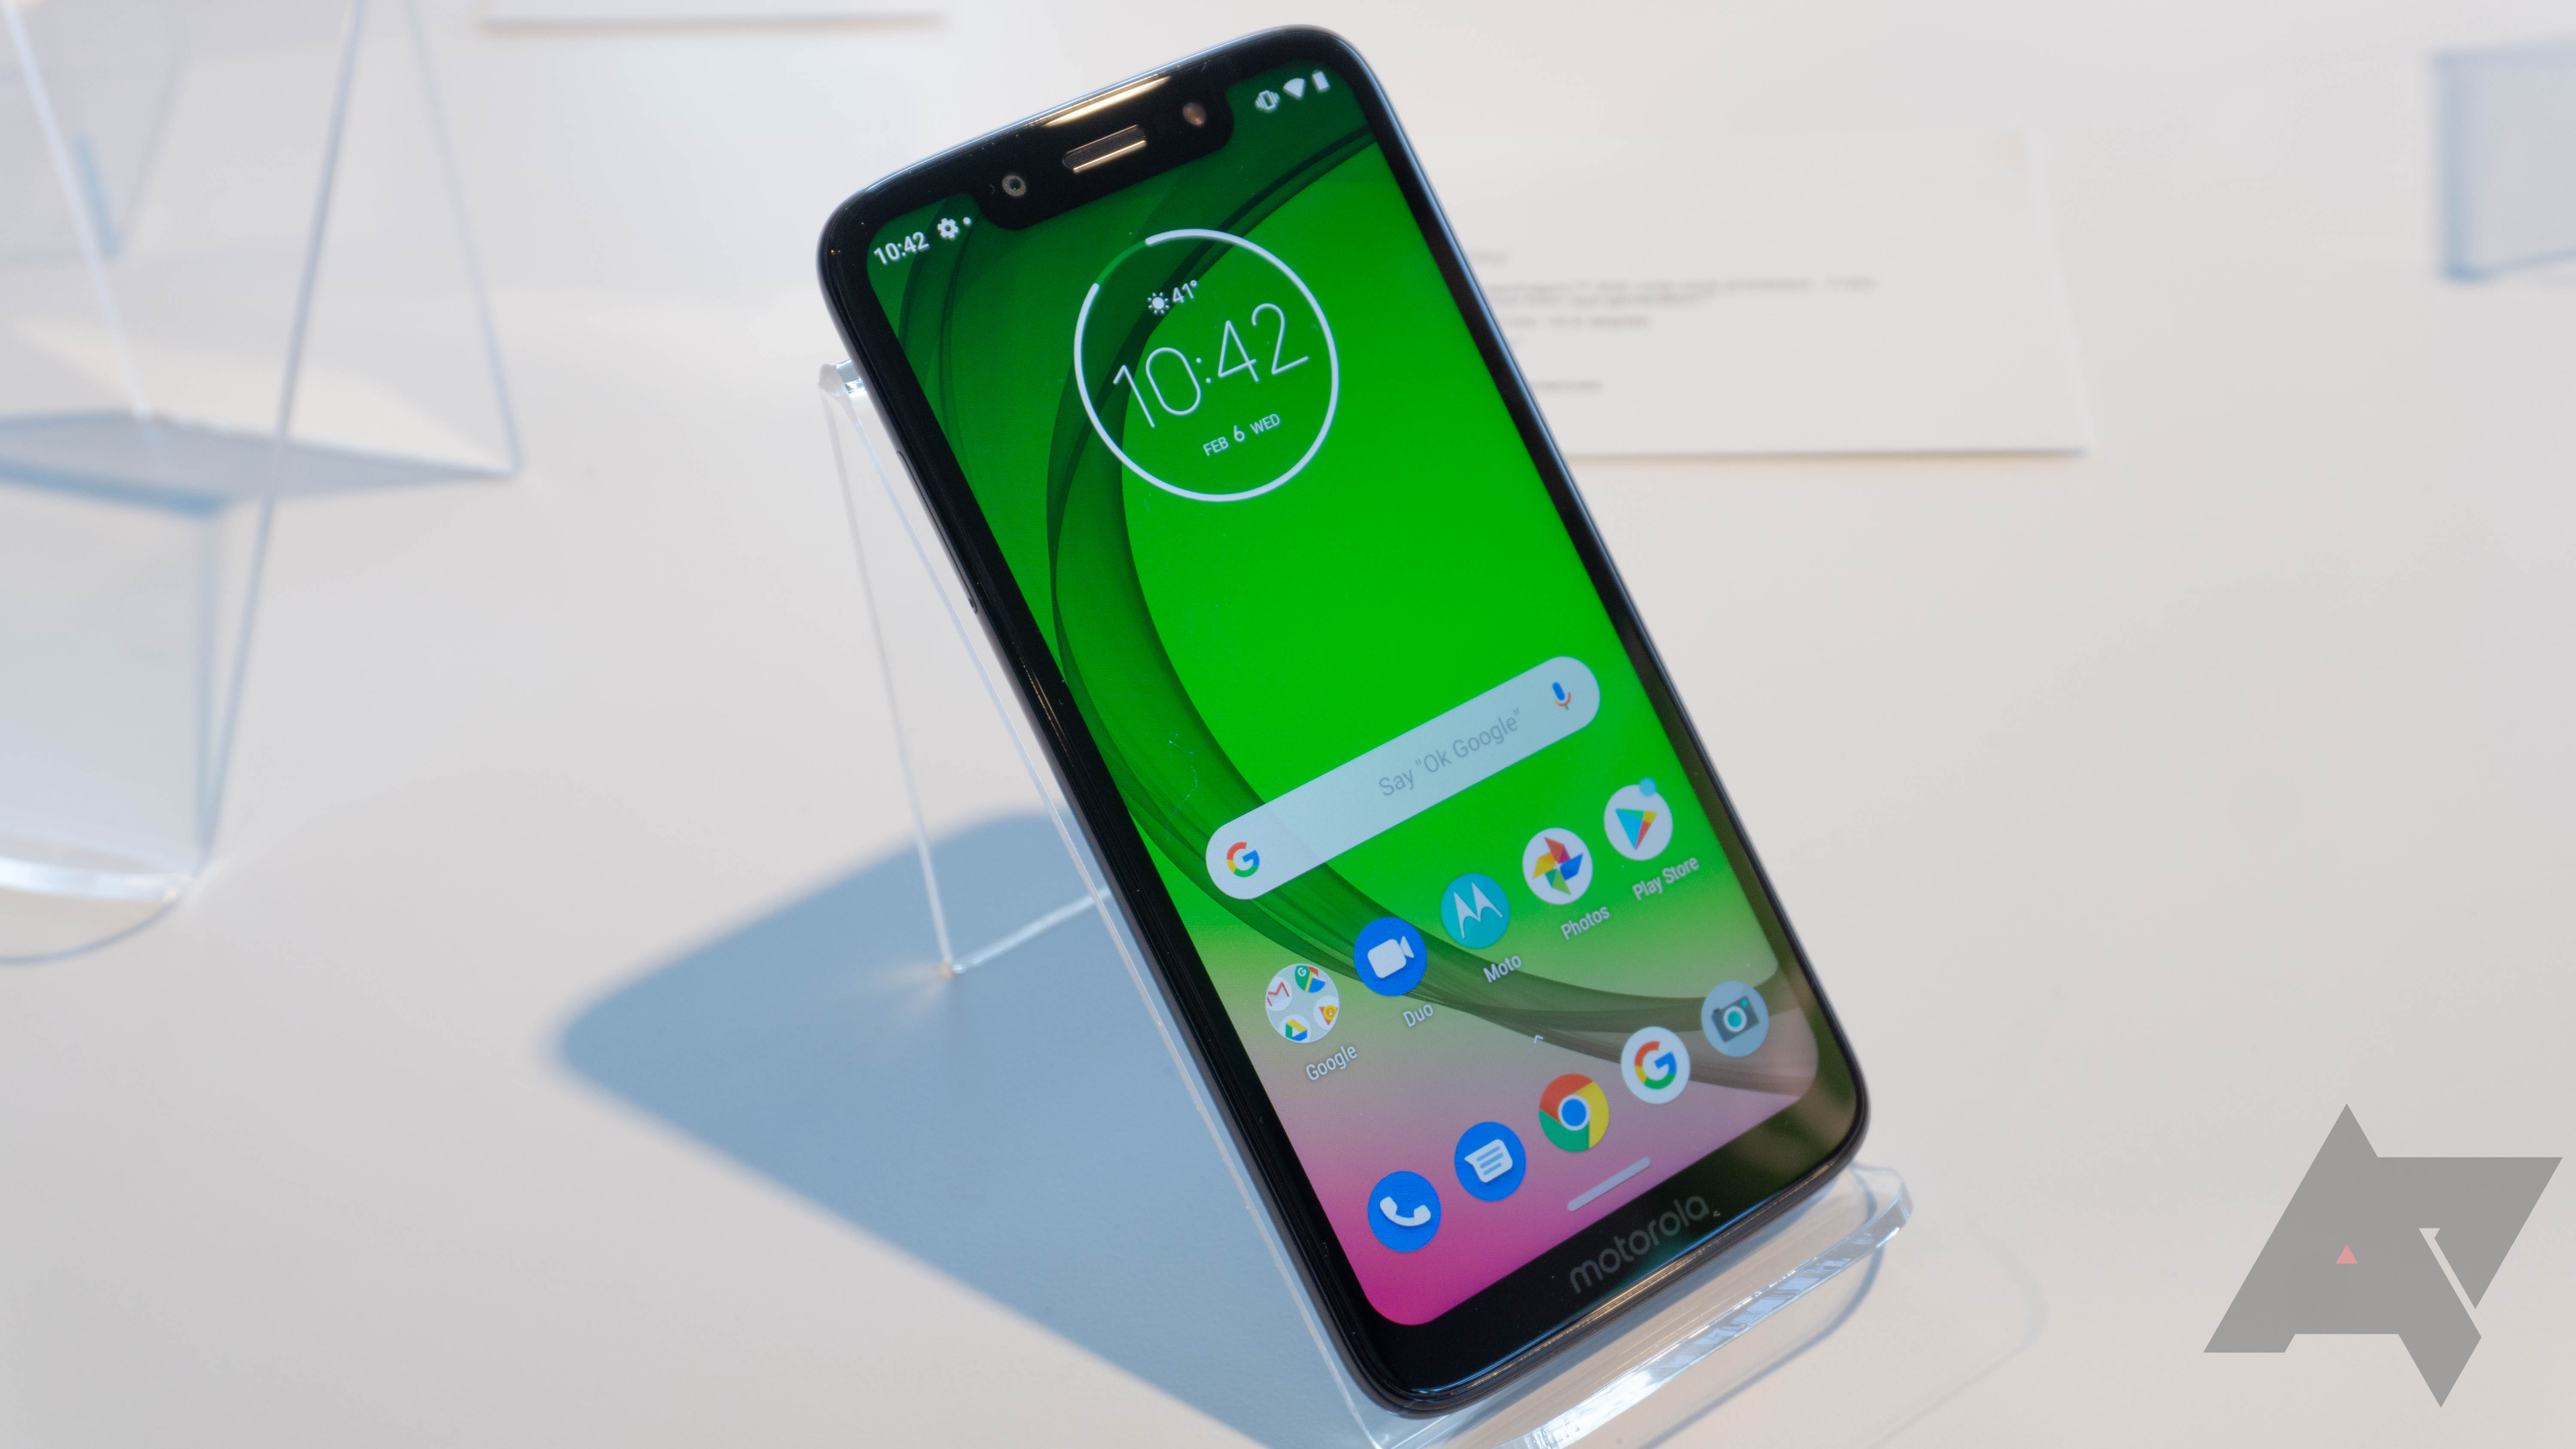 Motorola announces Moto G7 Power, G7 Play presale details